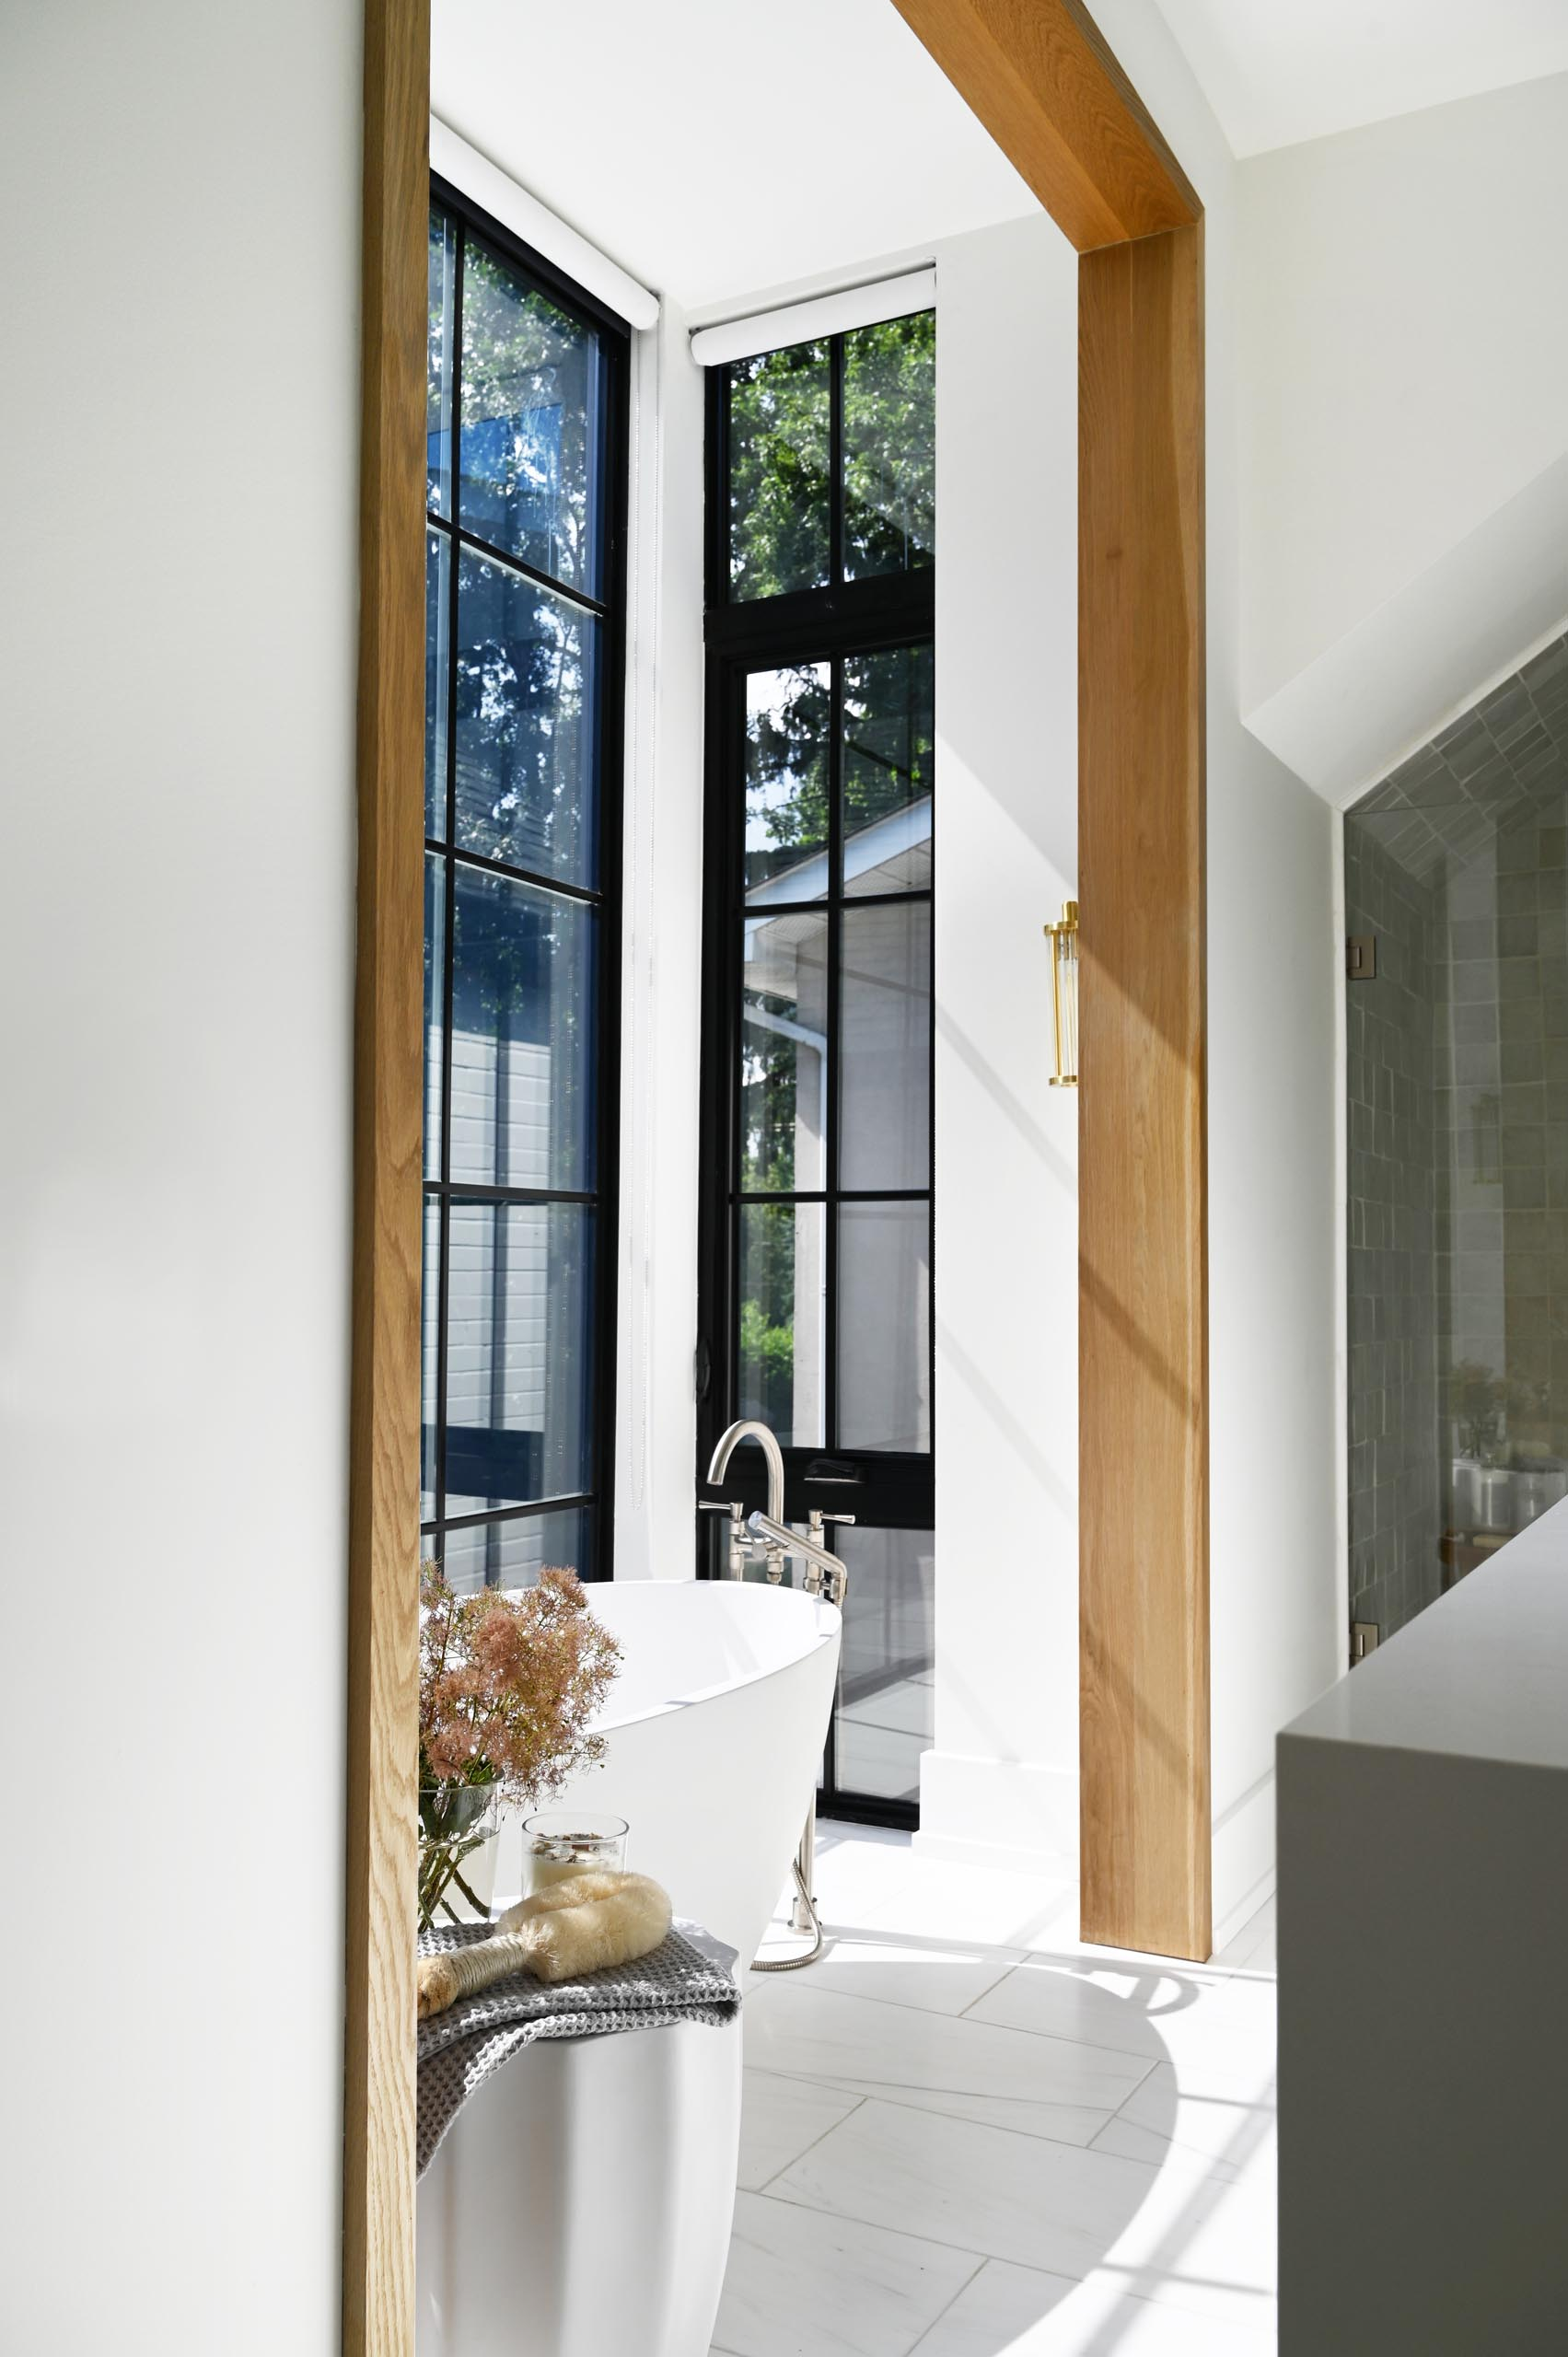 This modern white marbled spa-like bathroom includes a windowed alcove for the freestanding tub, metallic hardware, and wood accents.